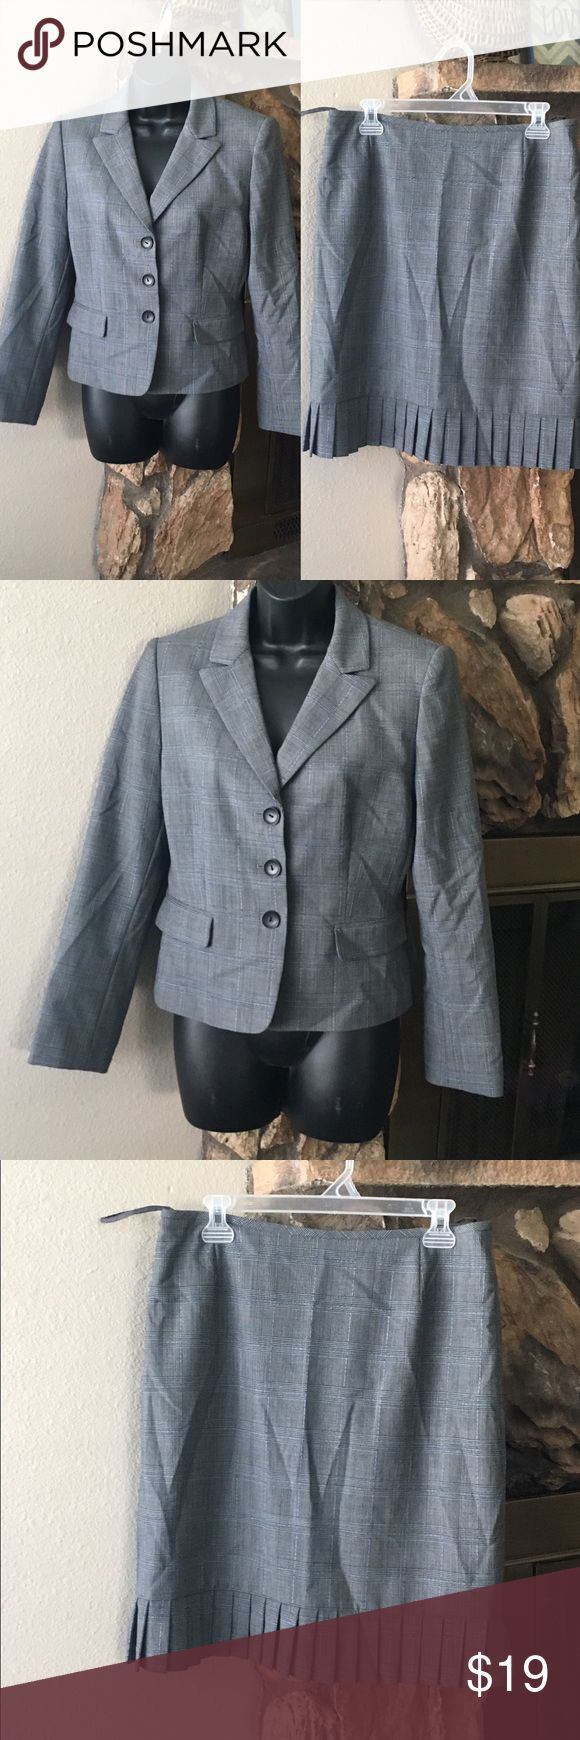 """Tahari 2-piece trumpet skirt suit size 10p Gently used  Blazer/Skirt trumpet pleated 10P  Dry clean only  Skirt length laying flat 21.5  Waist 32""""  Blazer  Shoulder to shoulder 16""""  Pit to pit 19"""" Length 22""""  Sleeve length 23.5"""" Tahari Skirts Skirt Sets"""